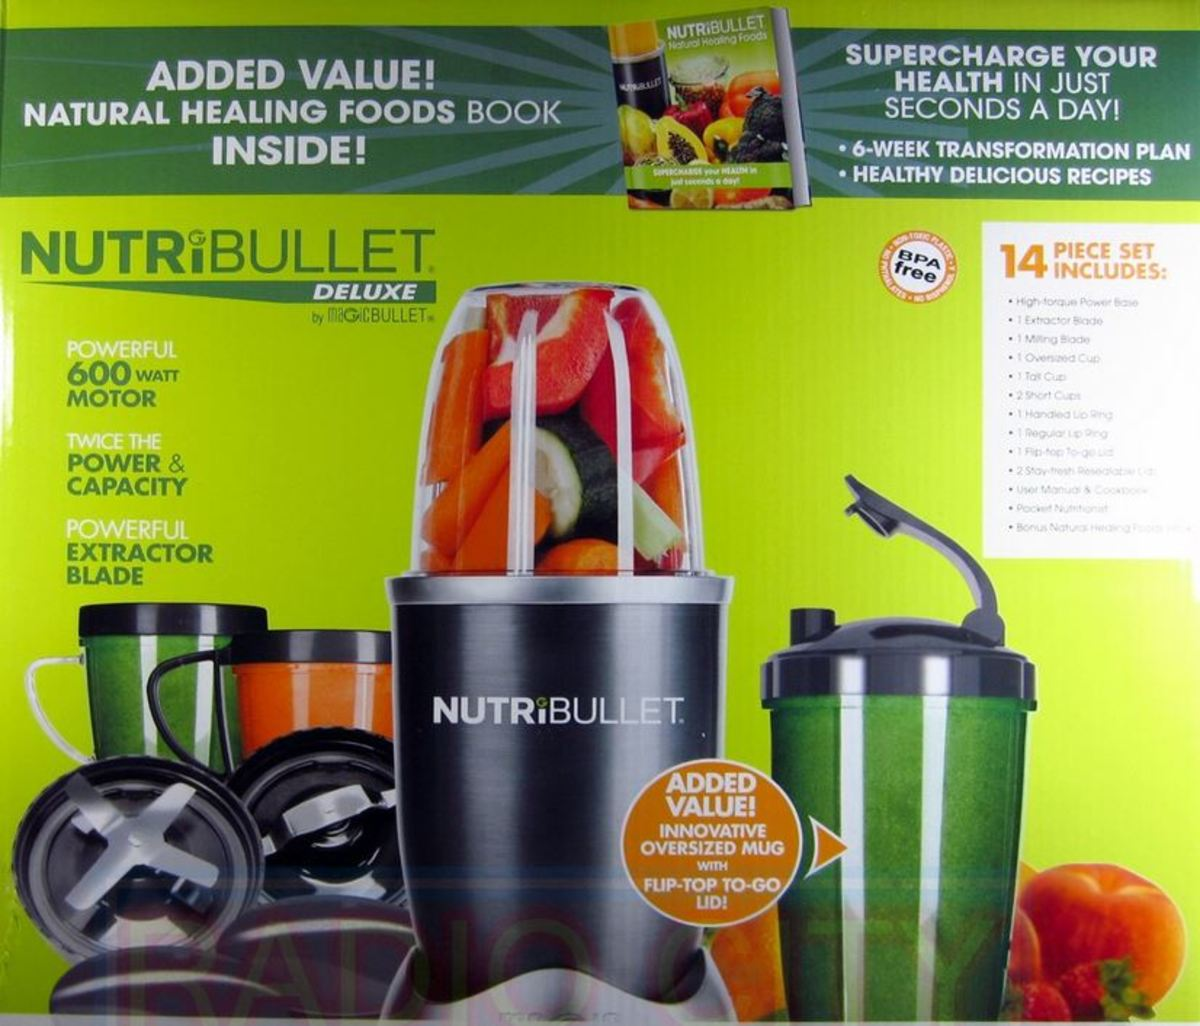 Nutribullet latch issue